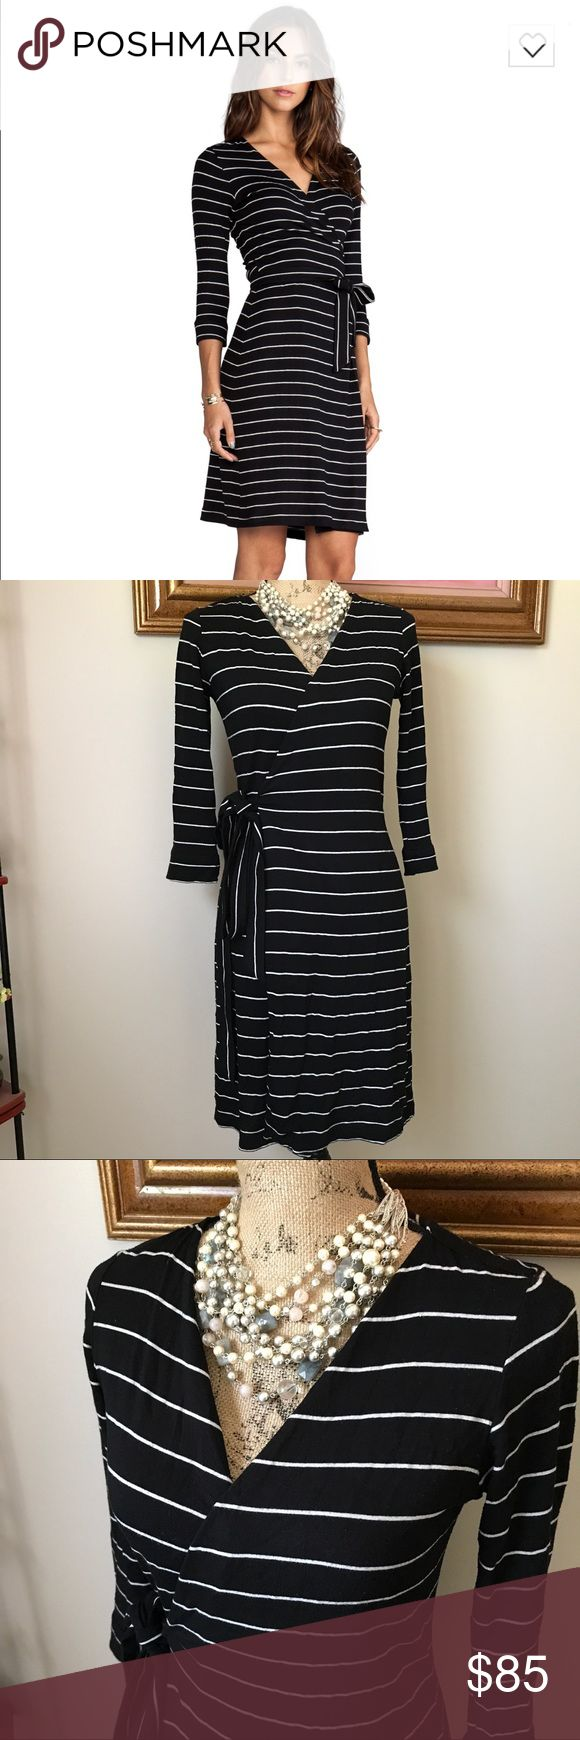 """Saint Grace Stripe Wrap Dress Beautiful Moby Dylana stripe wrap dress. 81% rayon, 13% poly, 6% lycra. Shoulder swam to hem measures approx 34"""". This dress is simply yet sophisticated! Size small. Saint Grace Dresses Long Sleeve"""